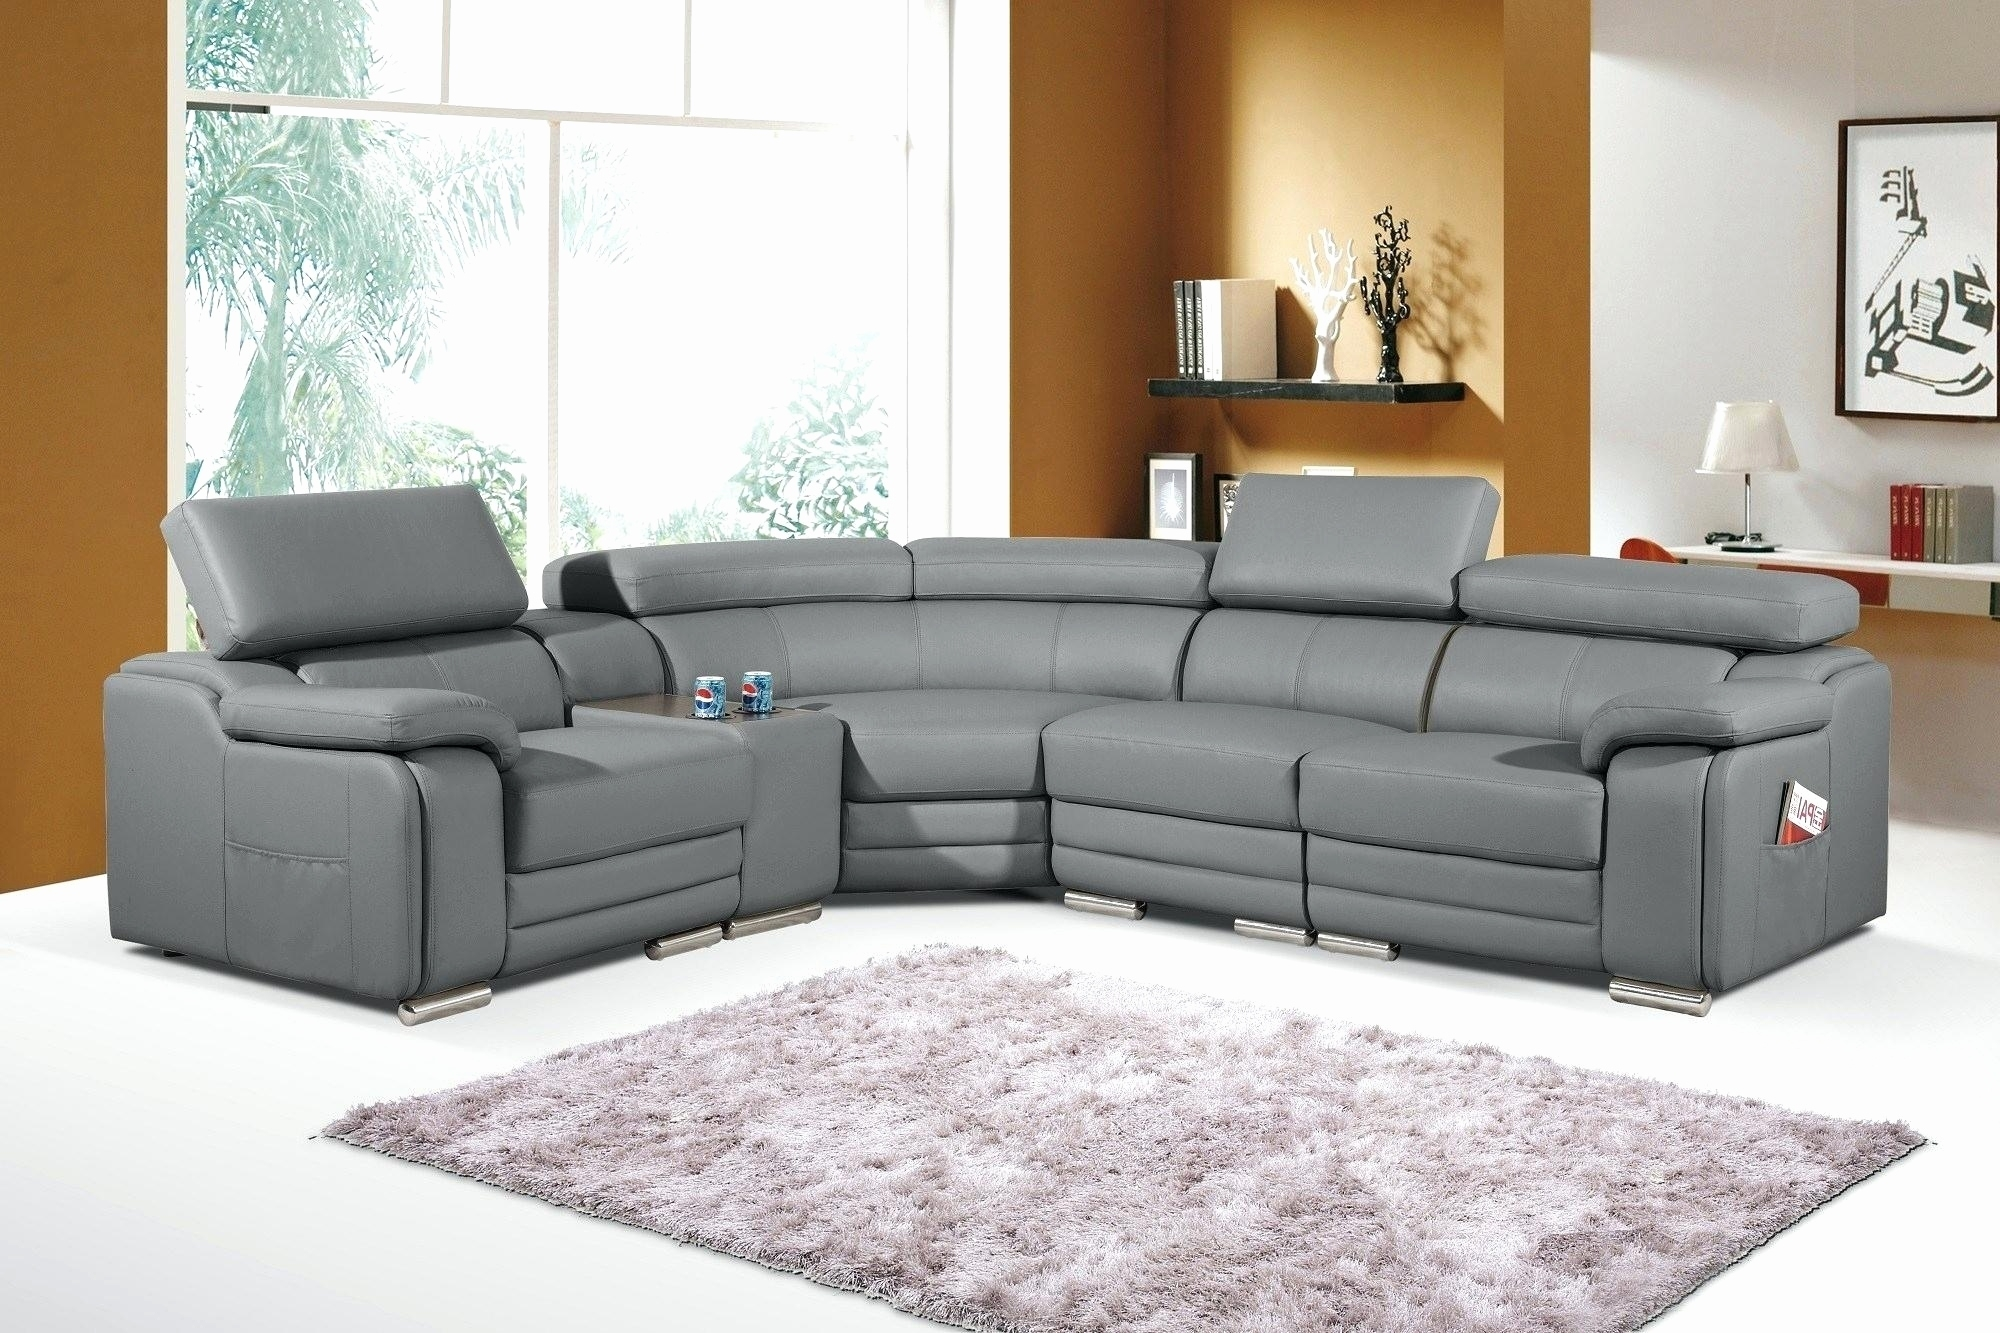 Awesome Sectional Sofa Montreal 2018 – Couches Ideas intended for Kijiji Montreal Sectional Sofas (Image 2 of 10)